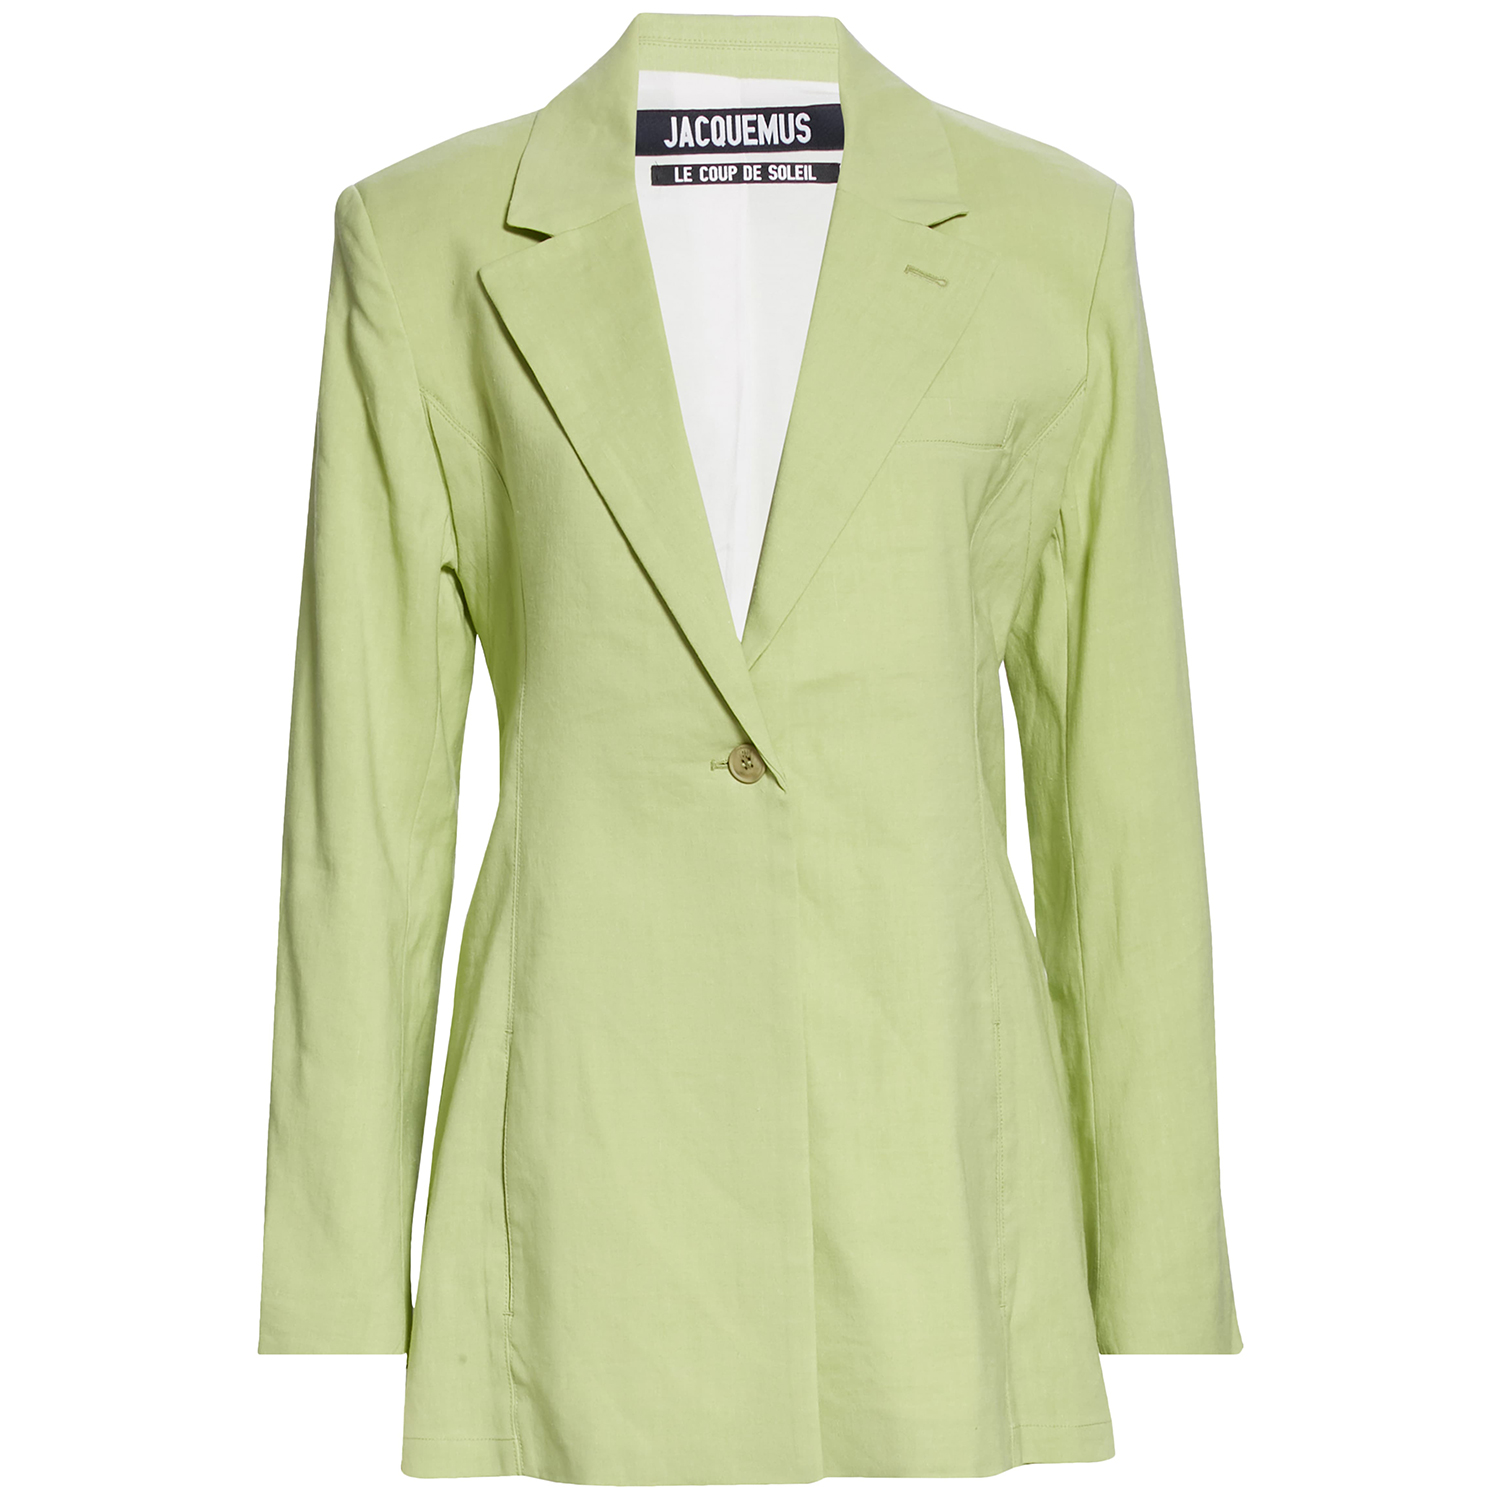 Jacquemus Tablier Back Tie Hemp & Wool Blend Blazer